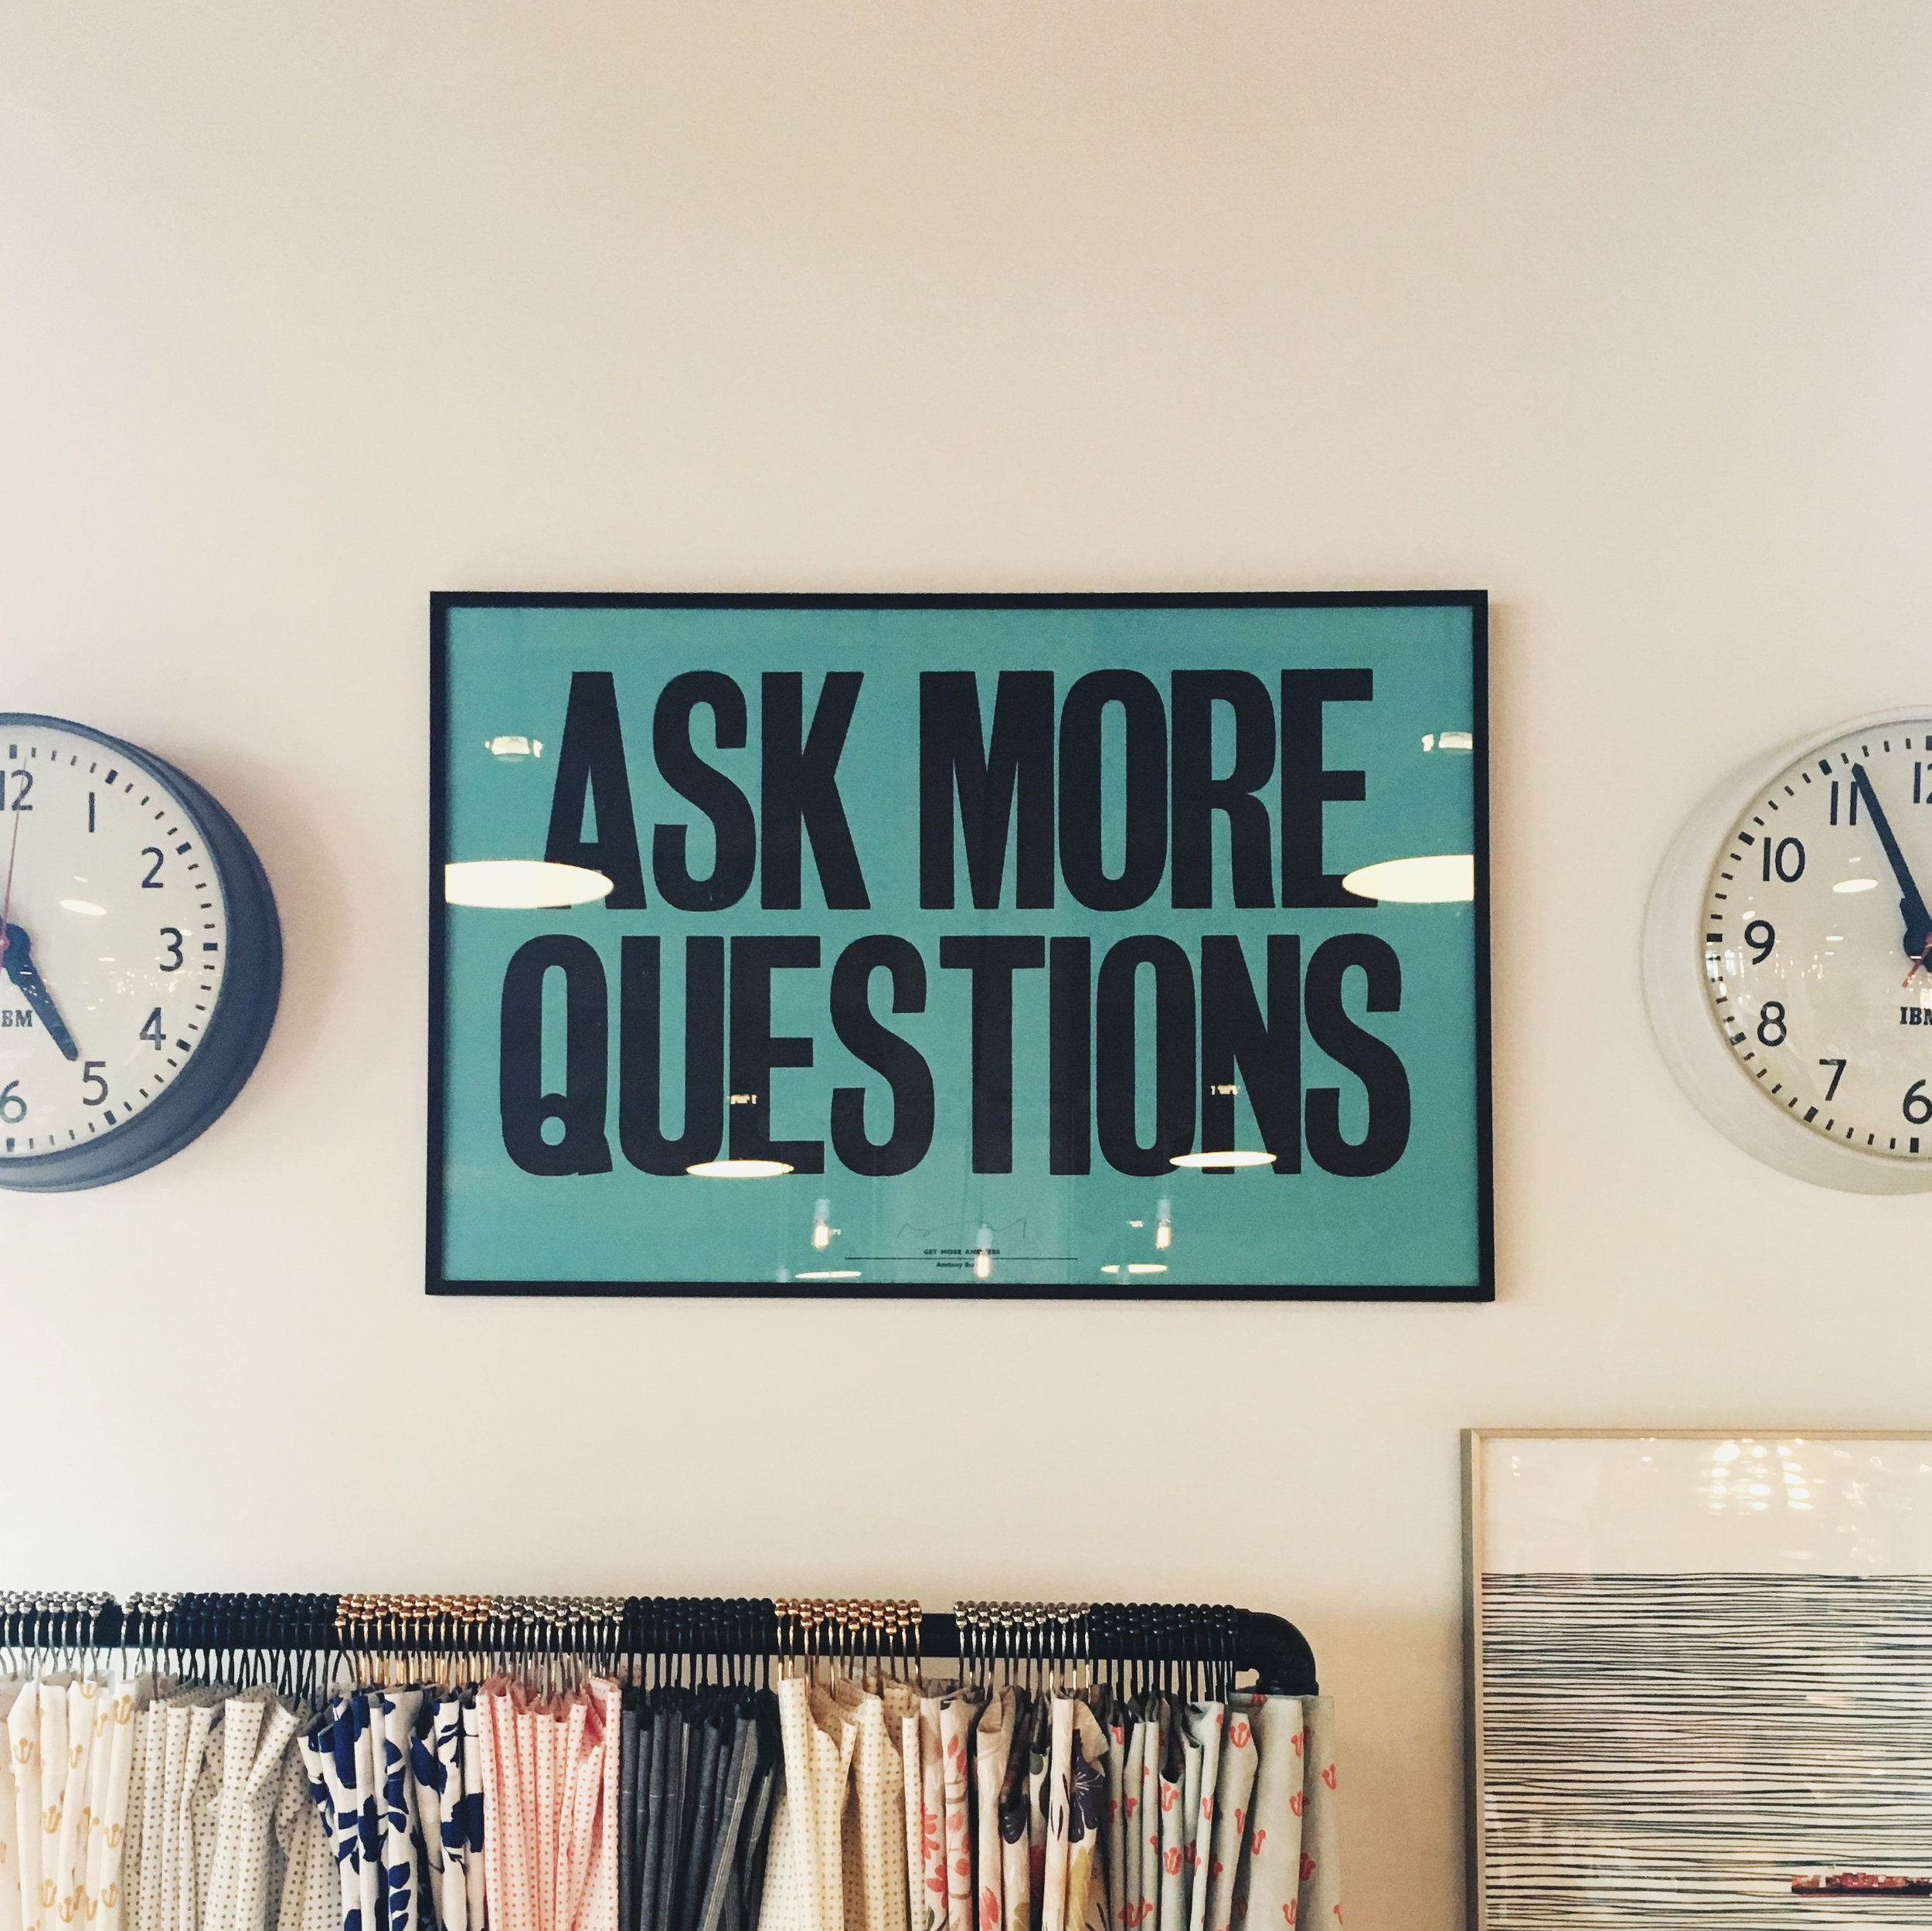 ask more questions.jpg